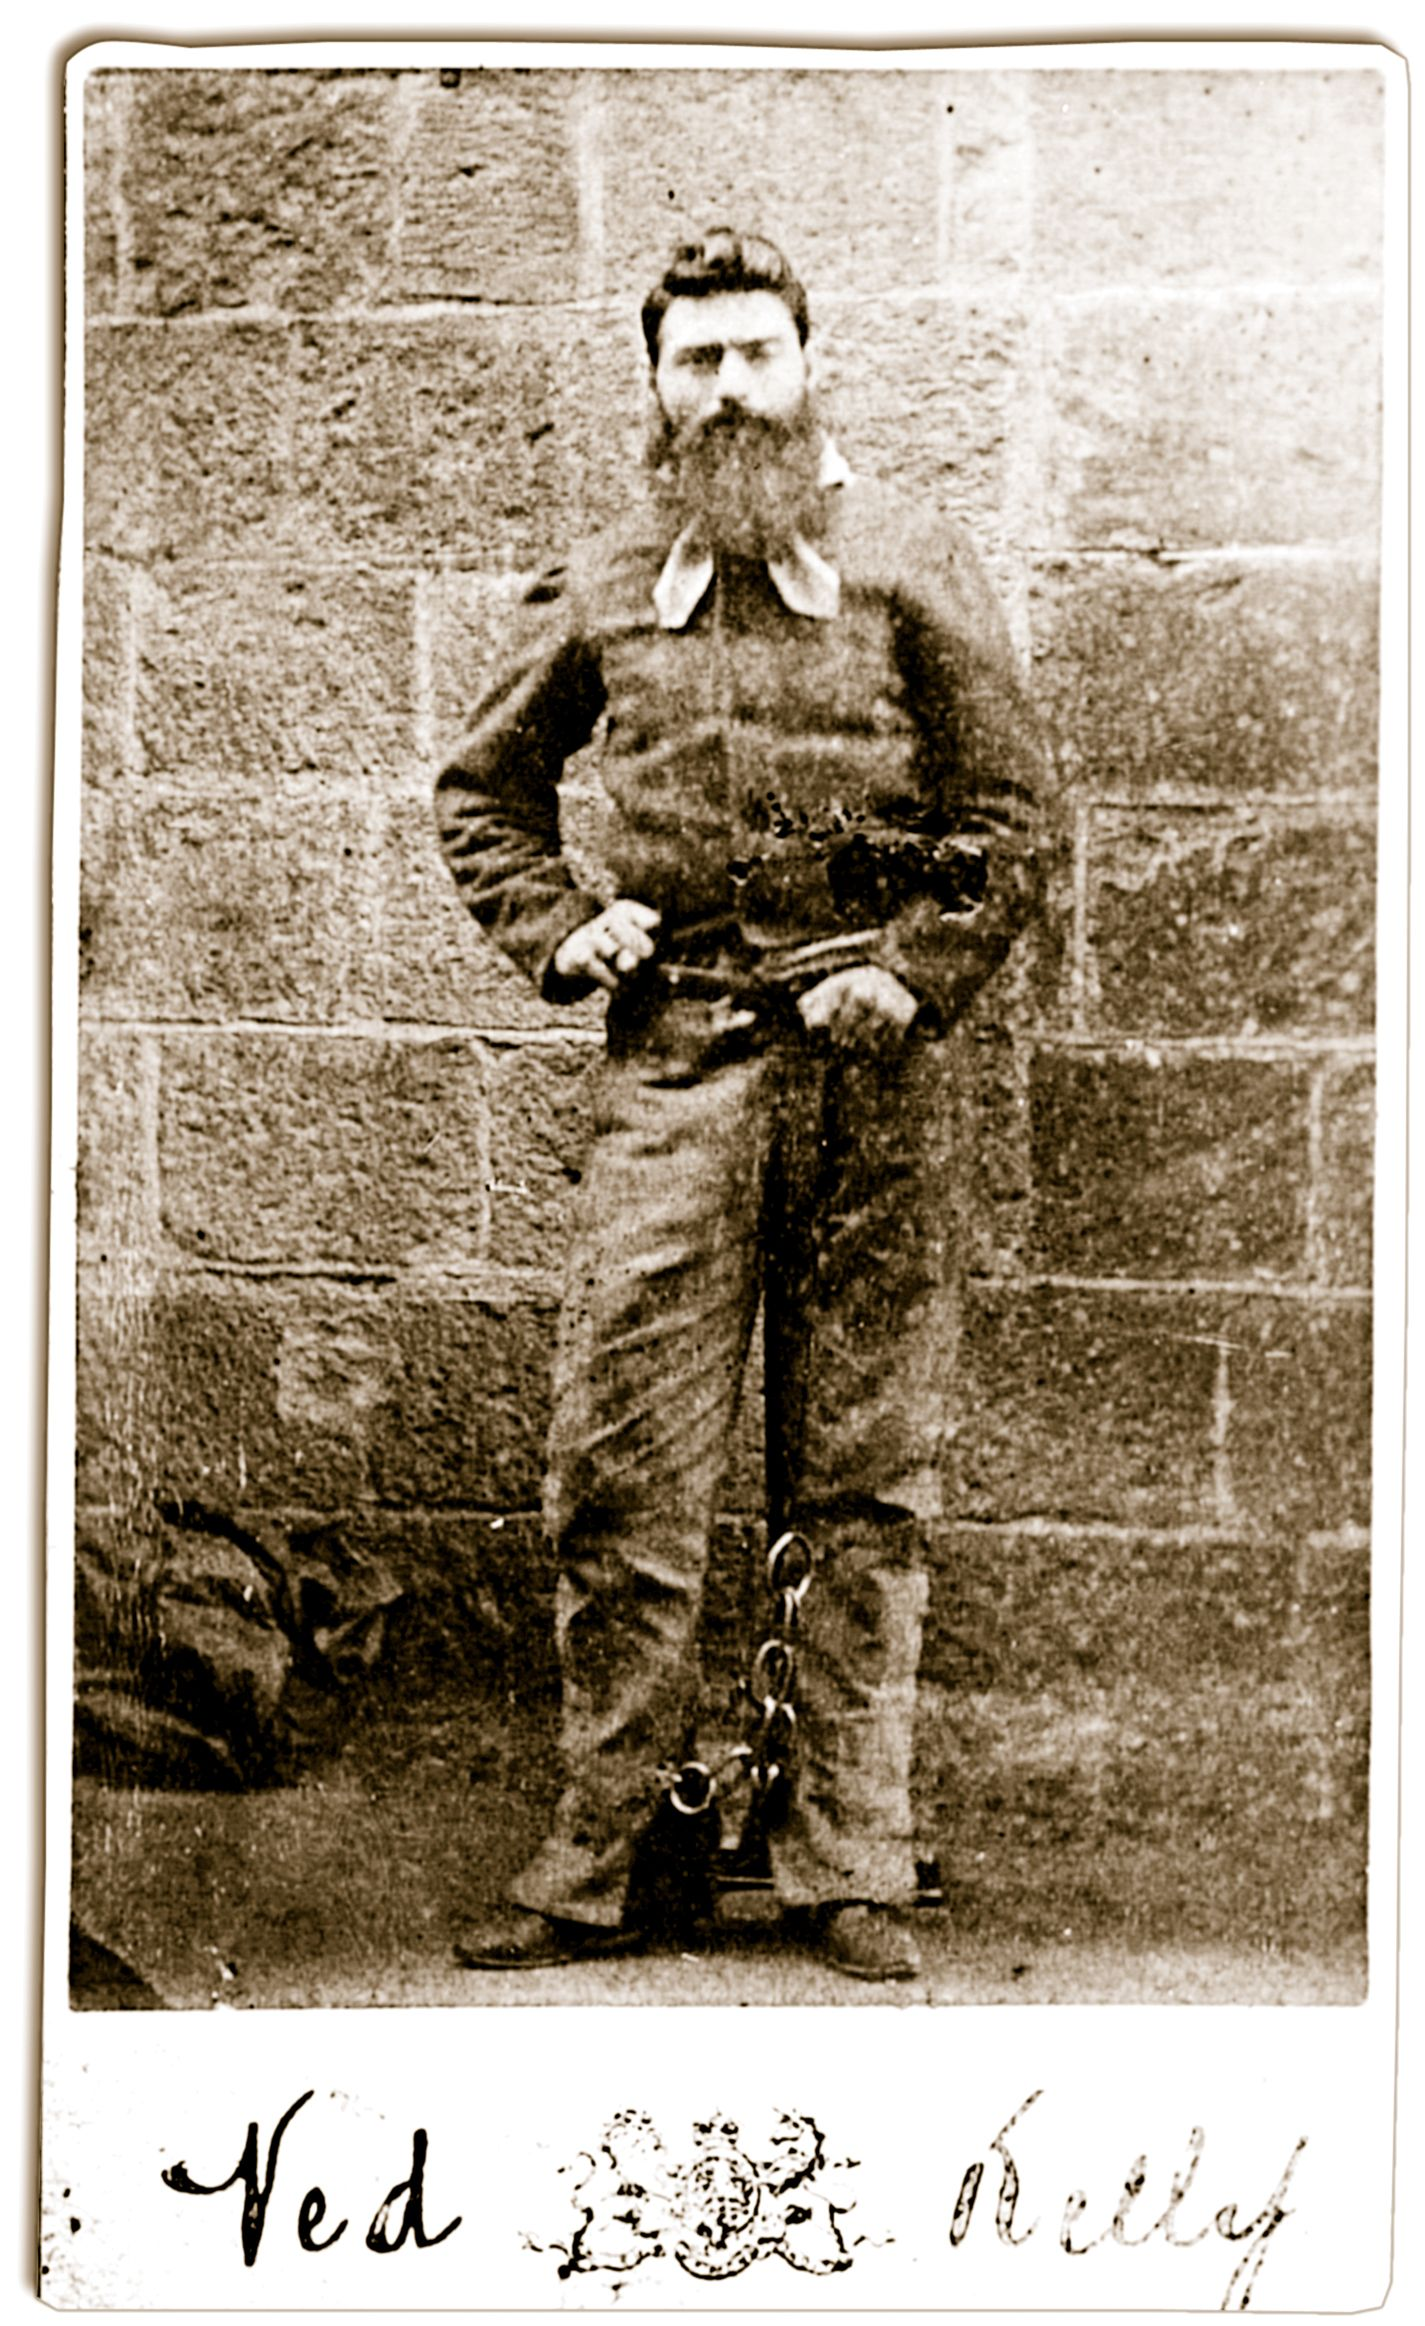 Essay My Favourite Teacher The Last Photos Of Ned Kelly Were Taken By The Official Melbourne Gaol  Photographer Charles Nettleton On November   The Day Before Neds  Execution Texting While Driving Essays also Family Traditions Essay The Last Photos Of Ned Kelly Were Taken By The Official Melbourne  Beauty And The Beast Essay